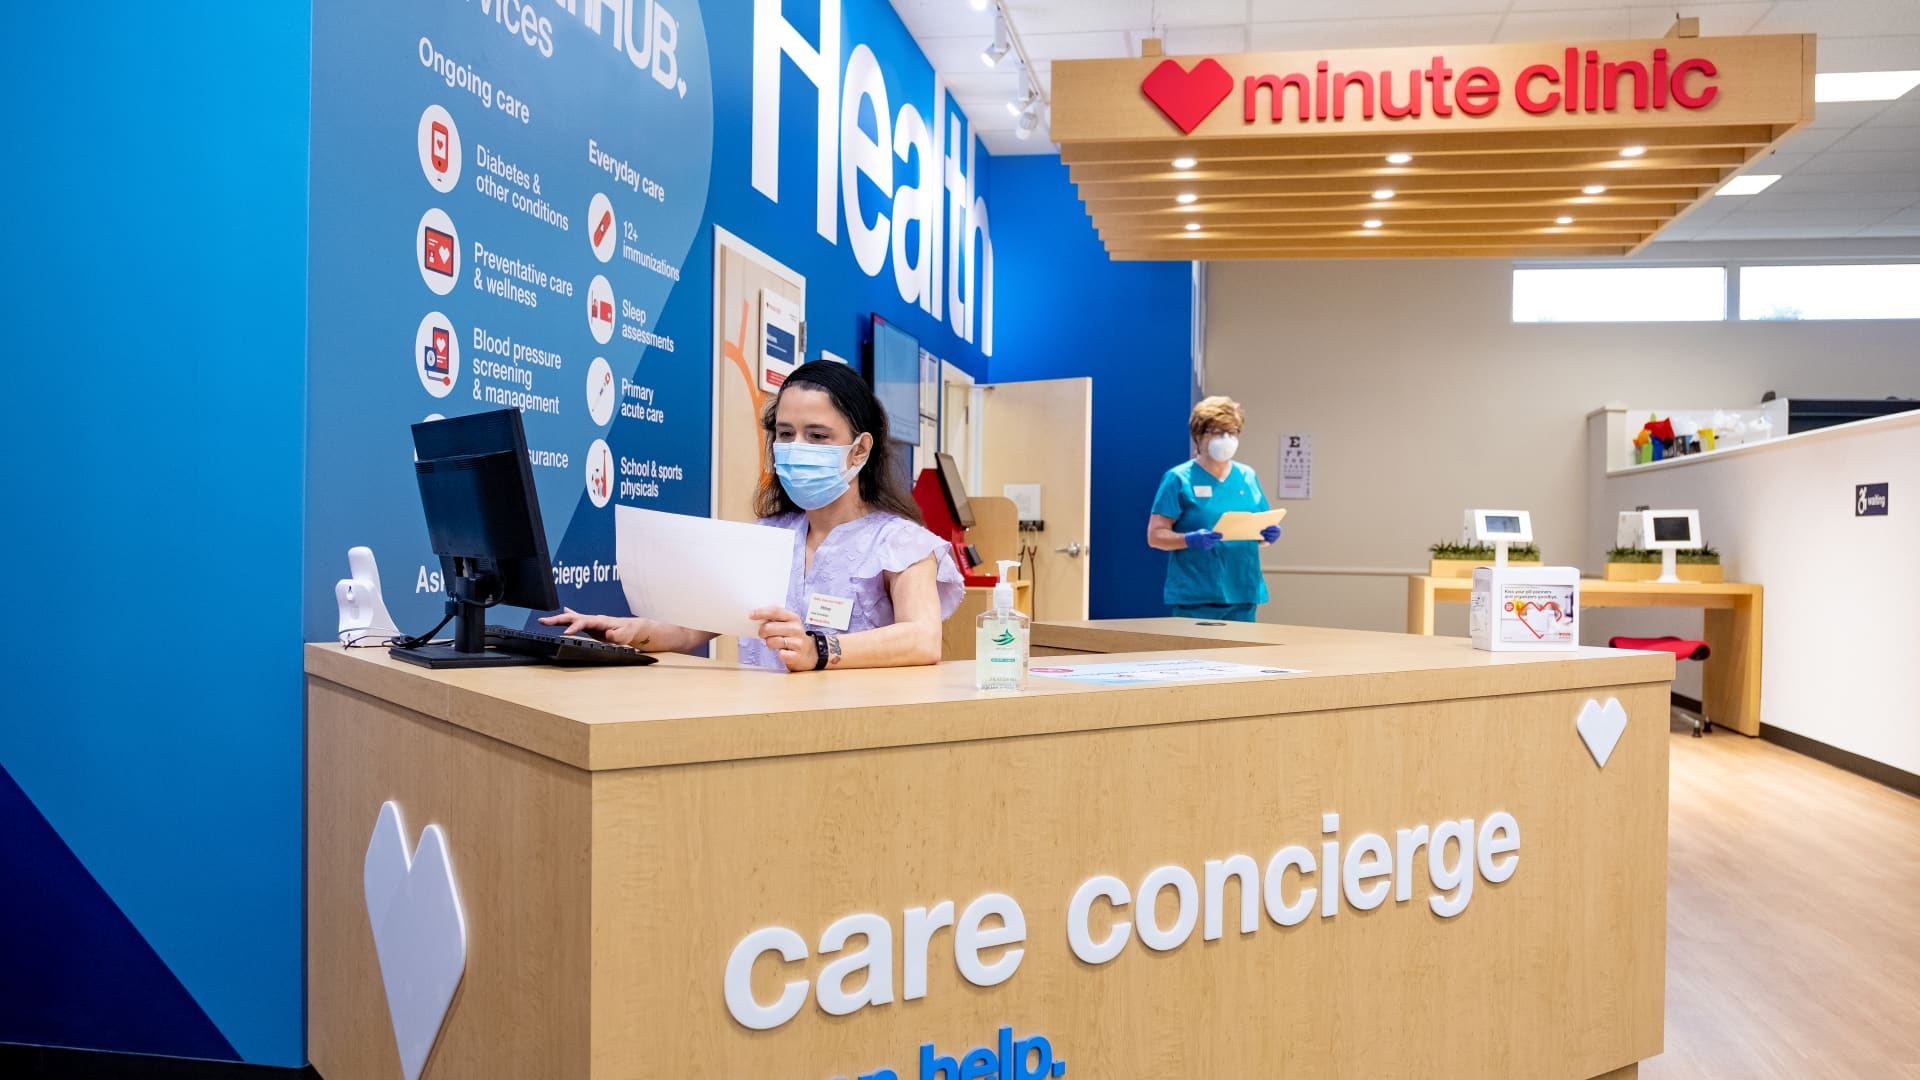 CVS wants to turn its stores into more of a health-care destination. It is expanding a store concept, called a HealthHUB, where it has a wider range of medical services.